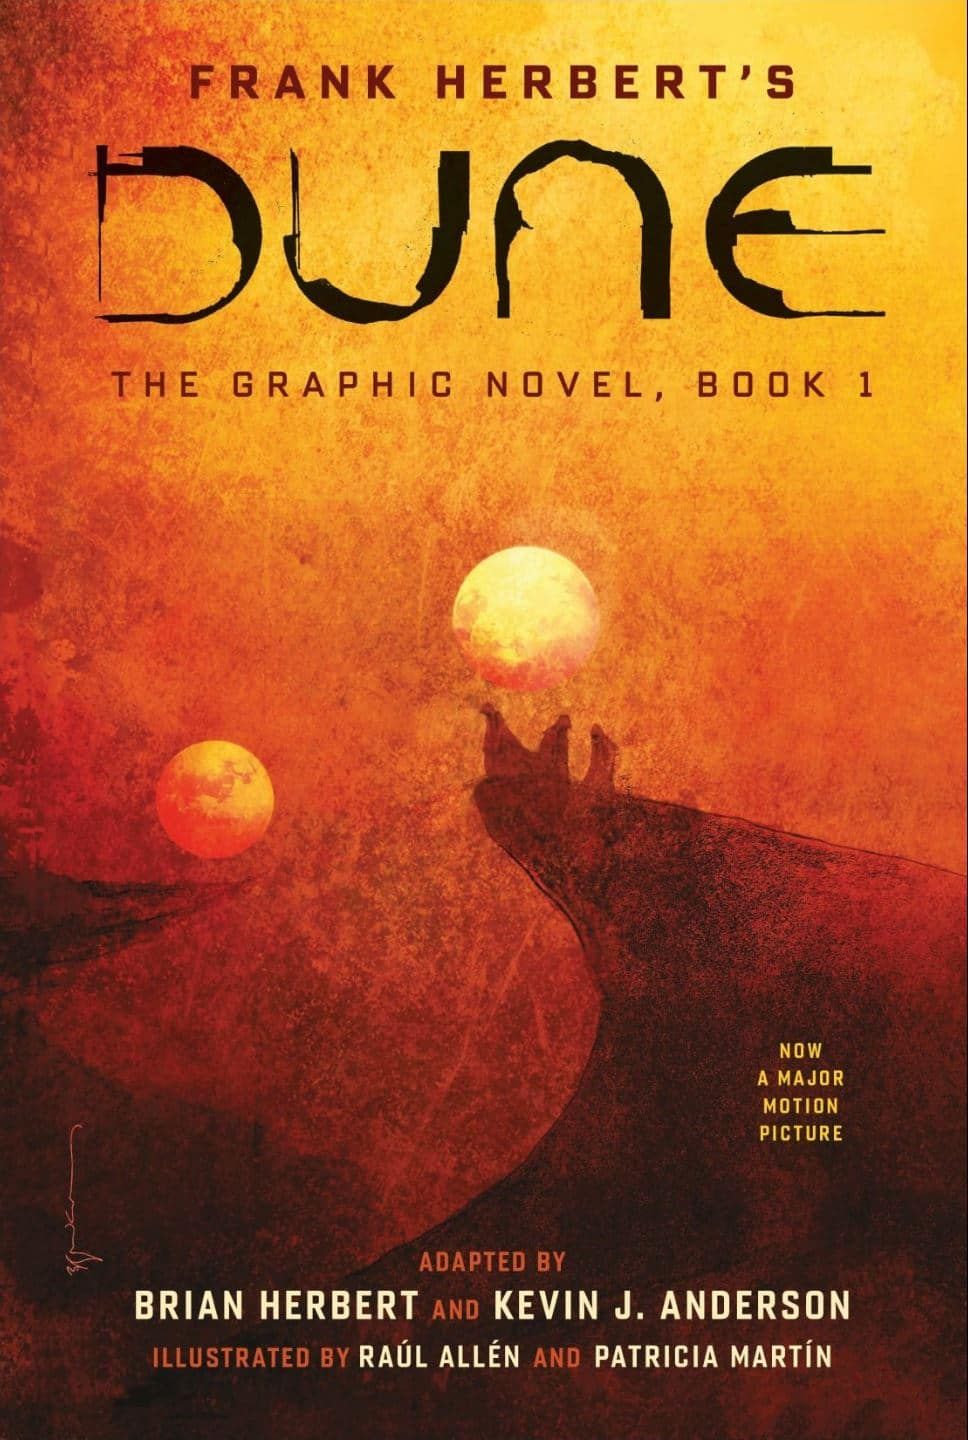 DUNE The Graphic Novel book 1 cover art